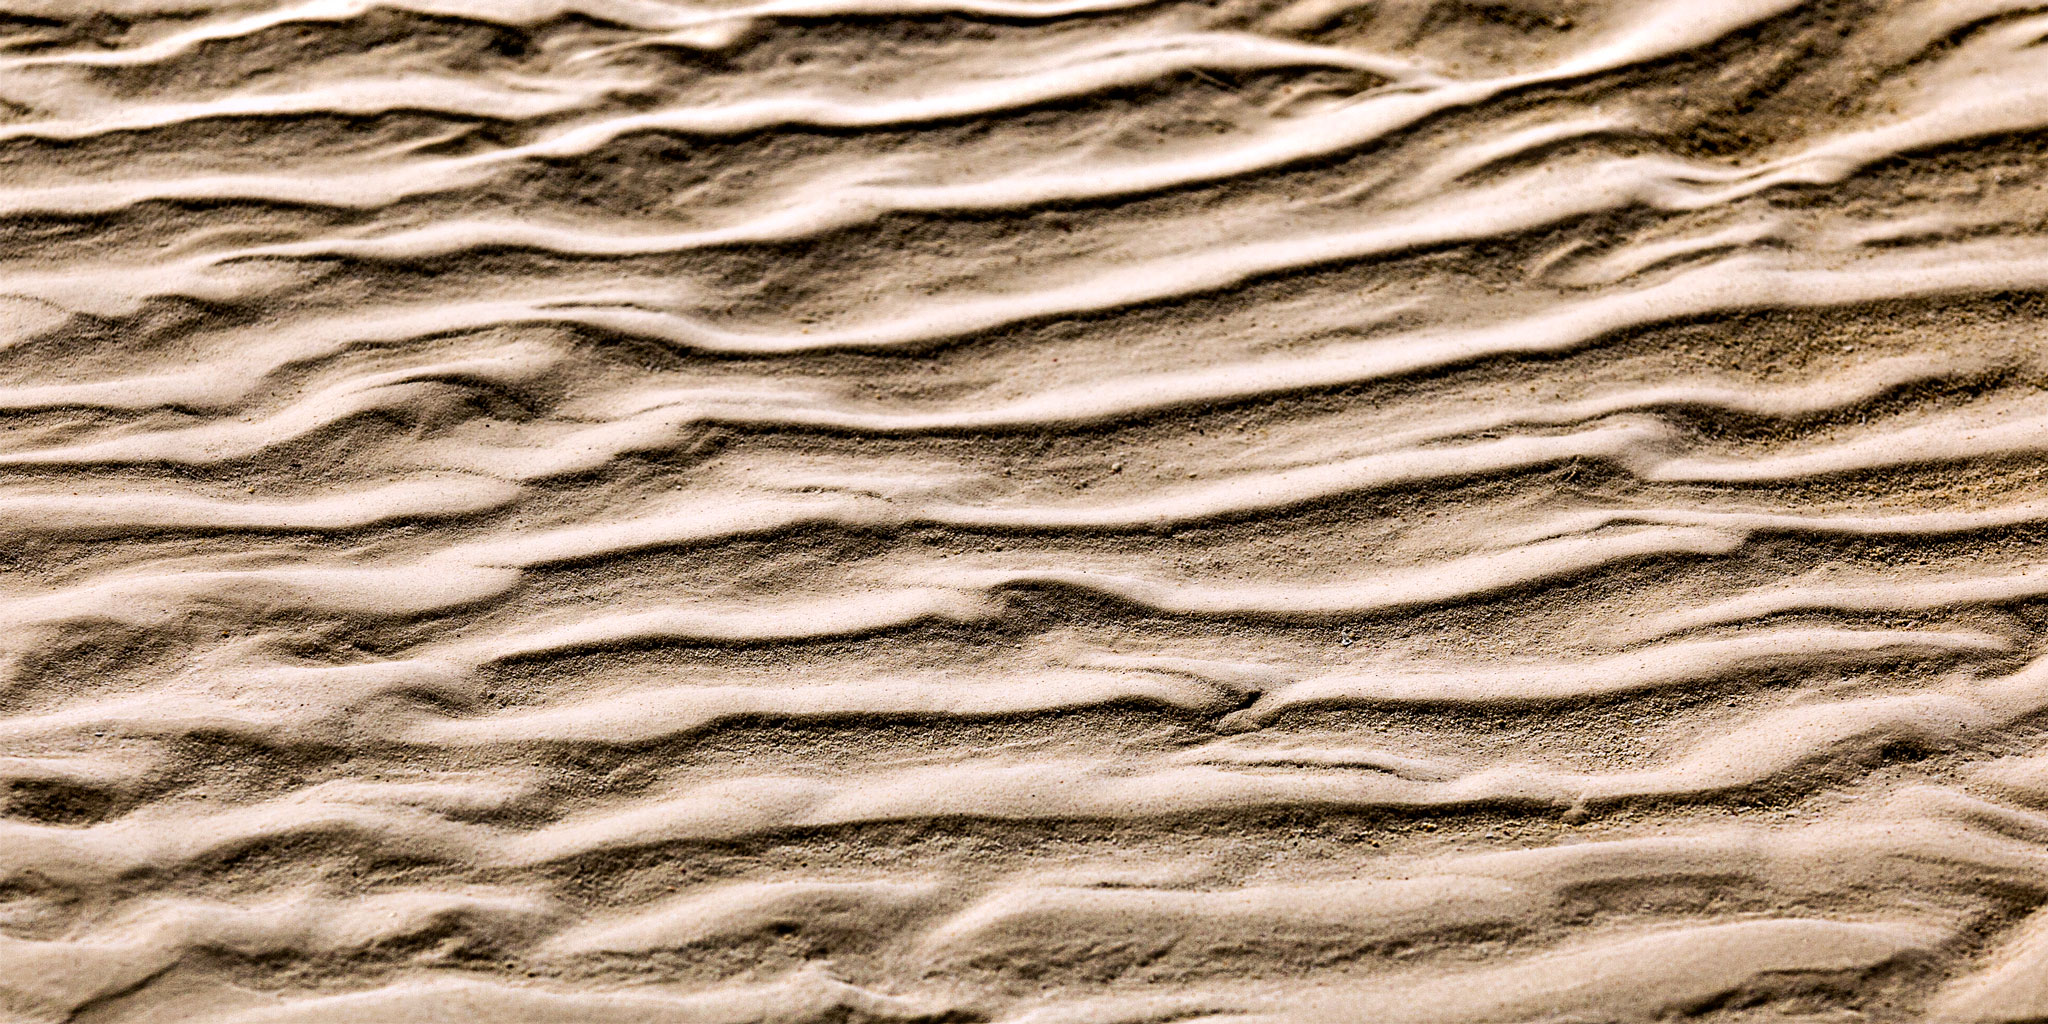 """Ripples in the Sand"" - I enjoy making abstract images. Here, ripples left by the ocean on the beach sand of Grand Bahama Island was the source of my exploration. Fascinating, isn't it? 20"" x 40"" Gallery-Wrapped Archival Pigment Print on Canvas $475"